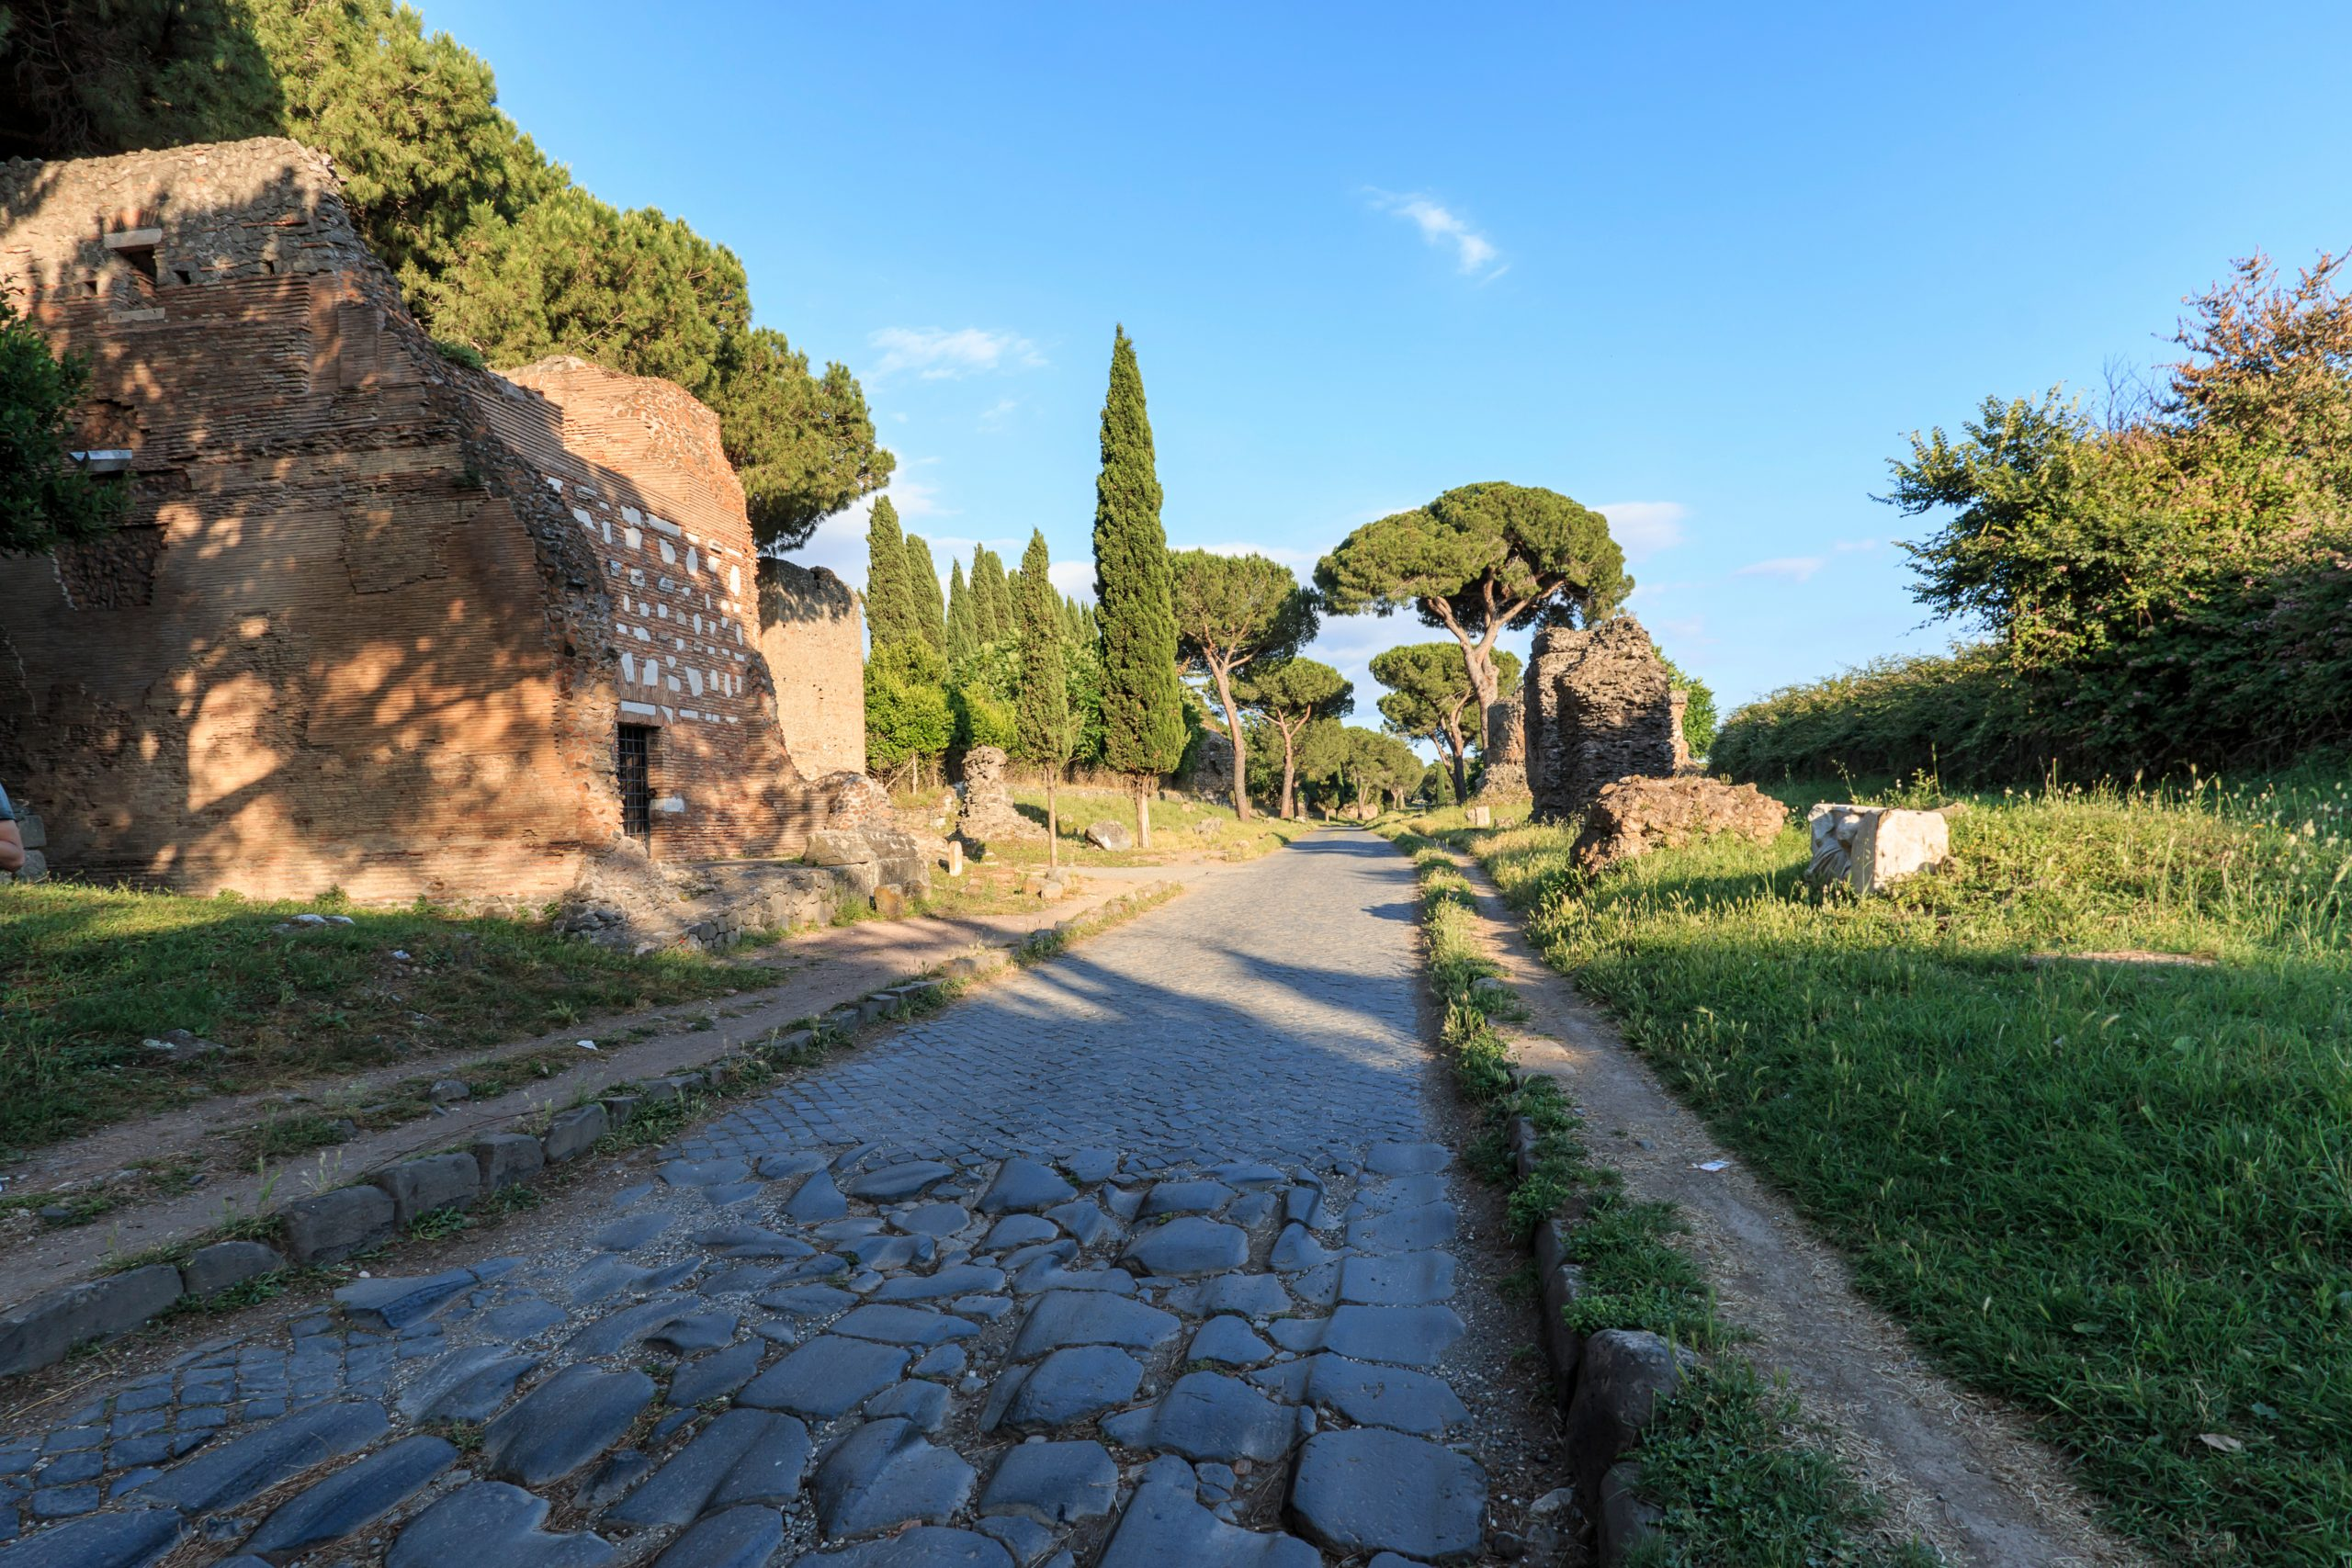 Ruins,Of,The,Ancient,Via,Appia,(appian,Way),In,Rome